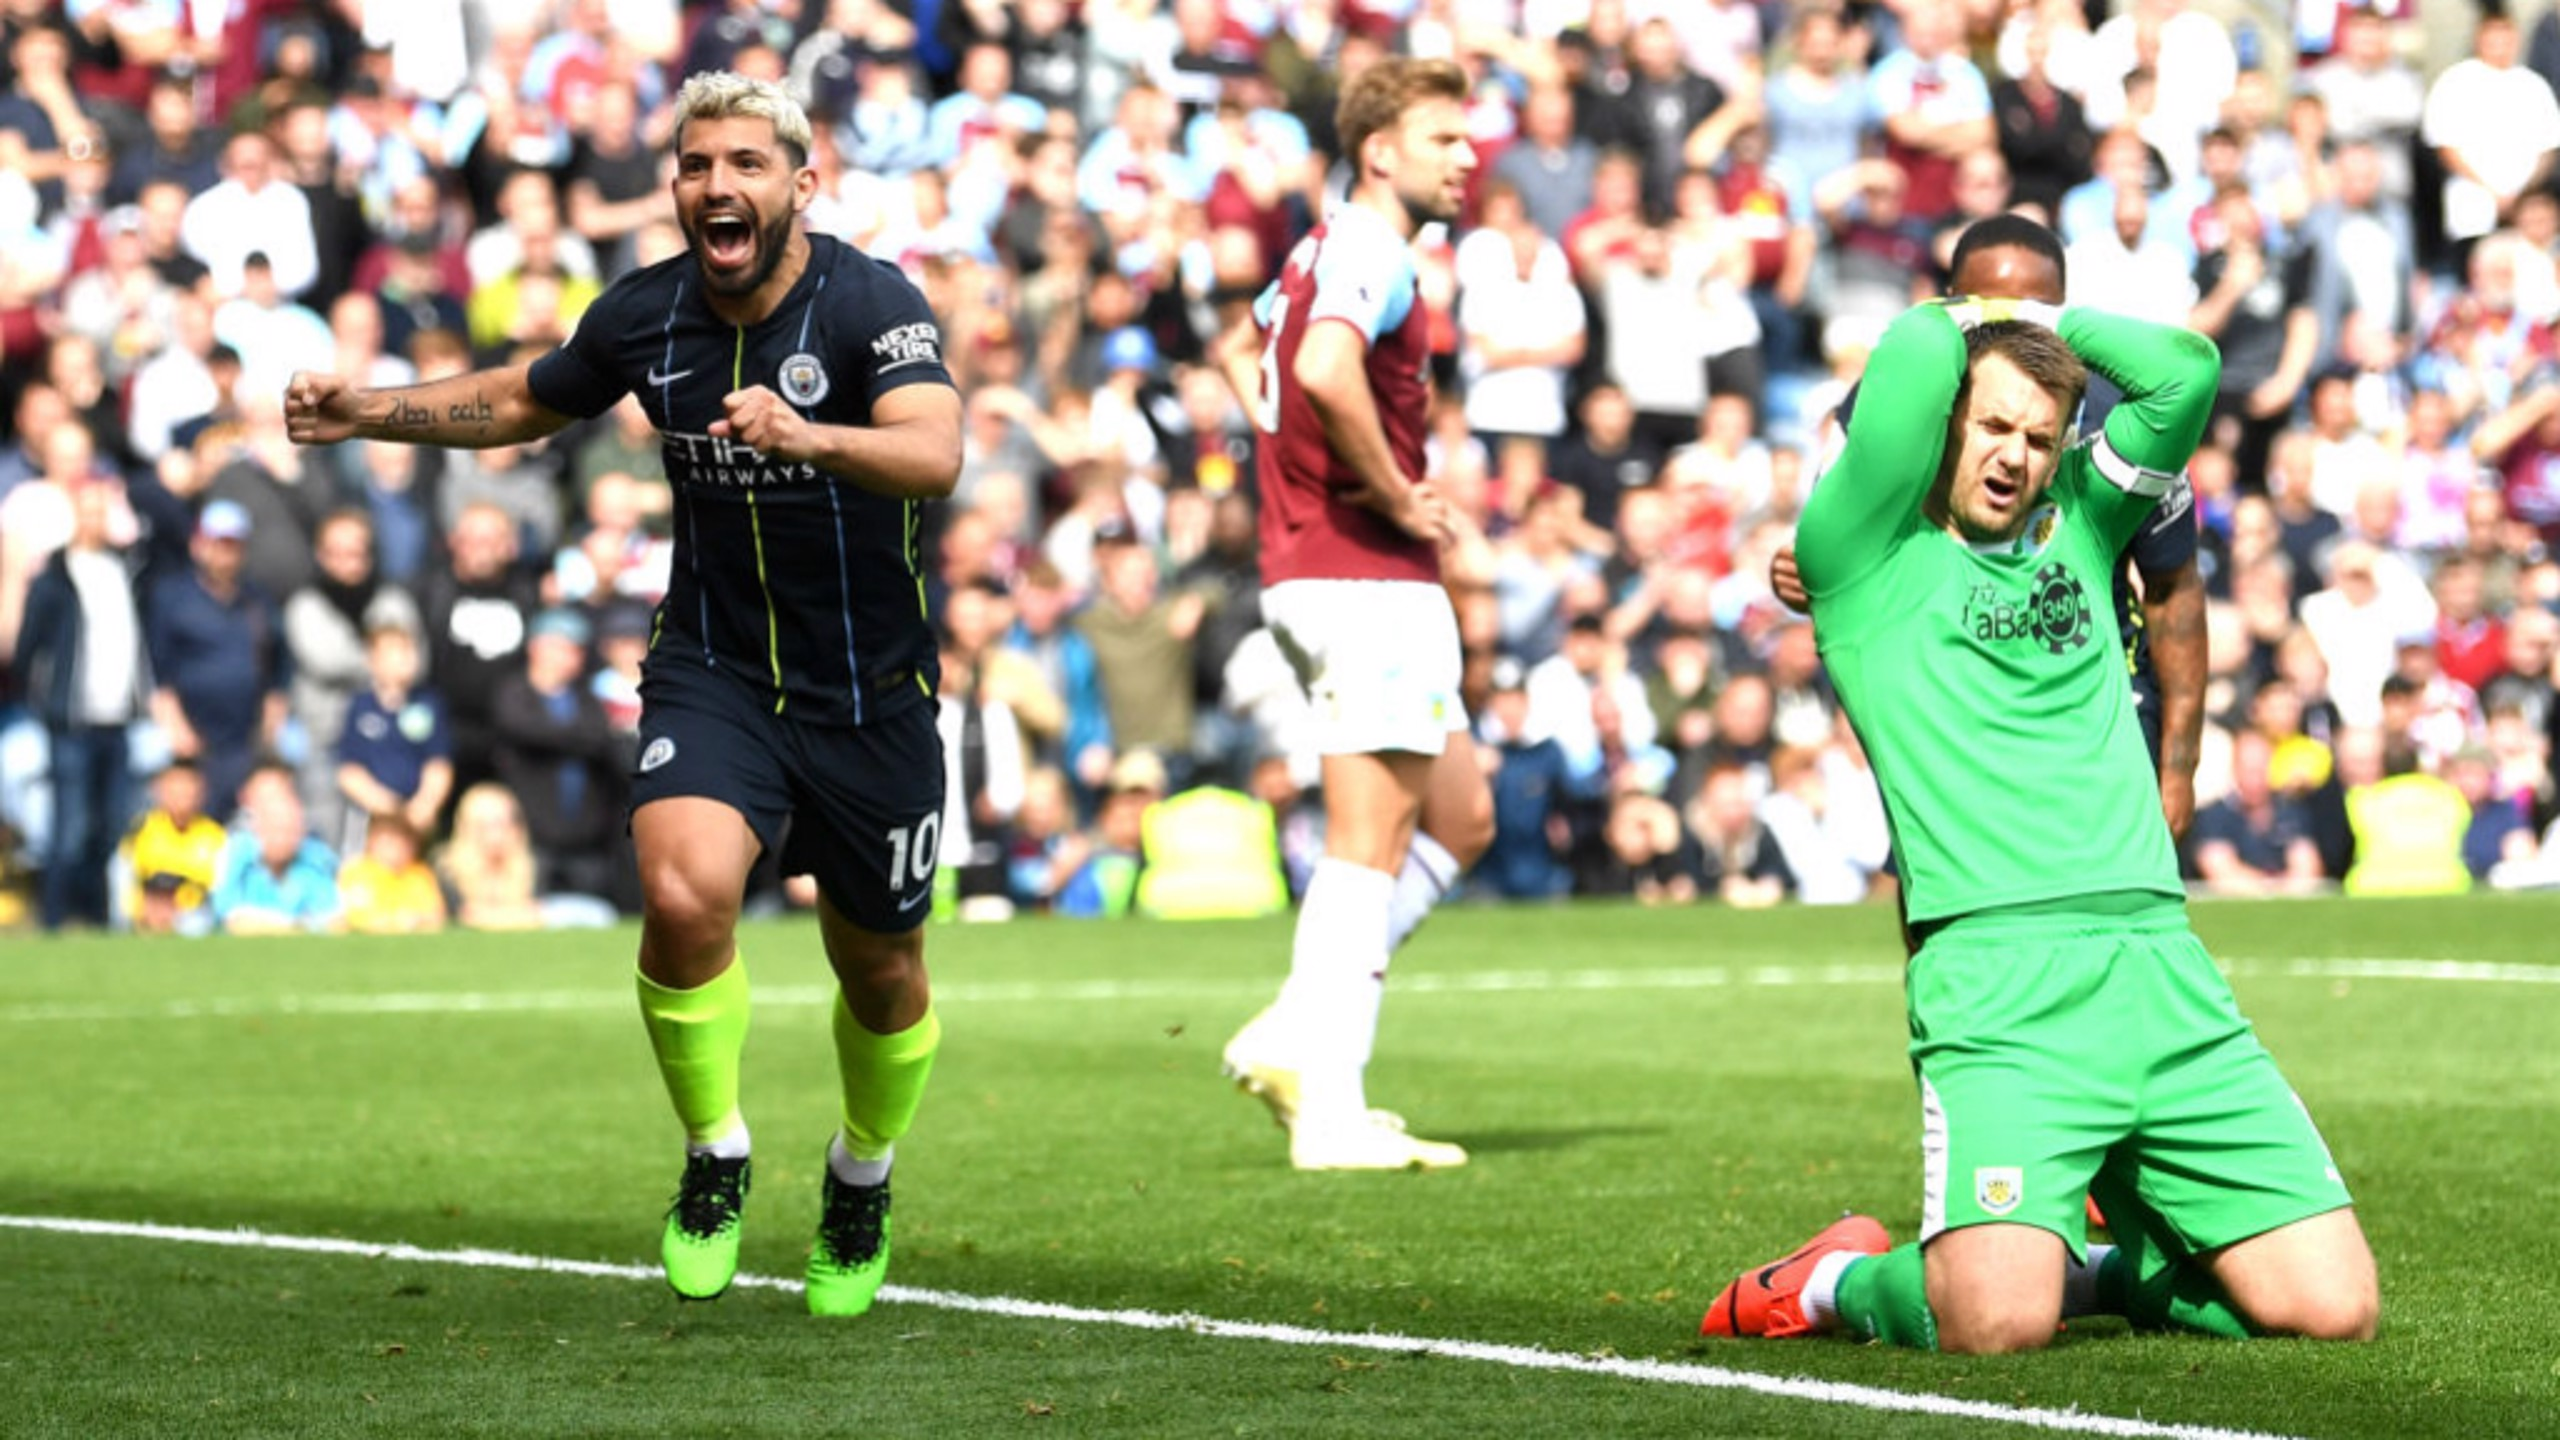 GET IN: Sergio Aguero grabbed the winner with his 20th goal of the season.